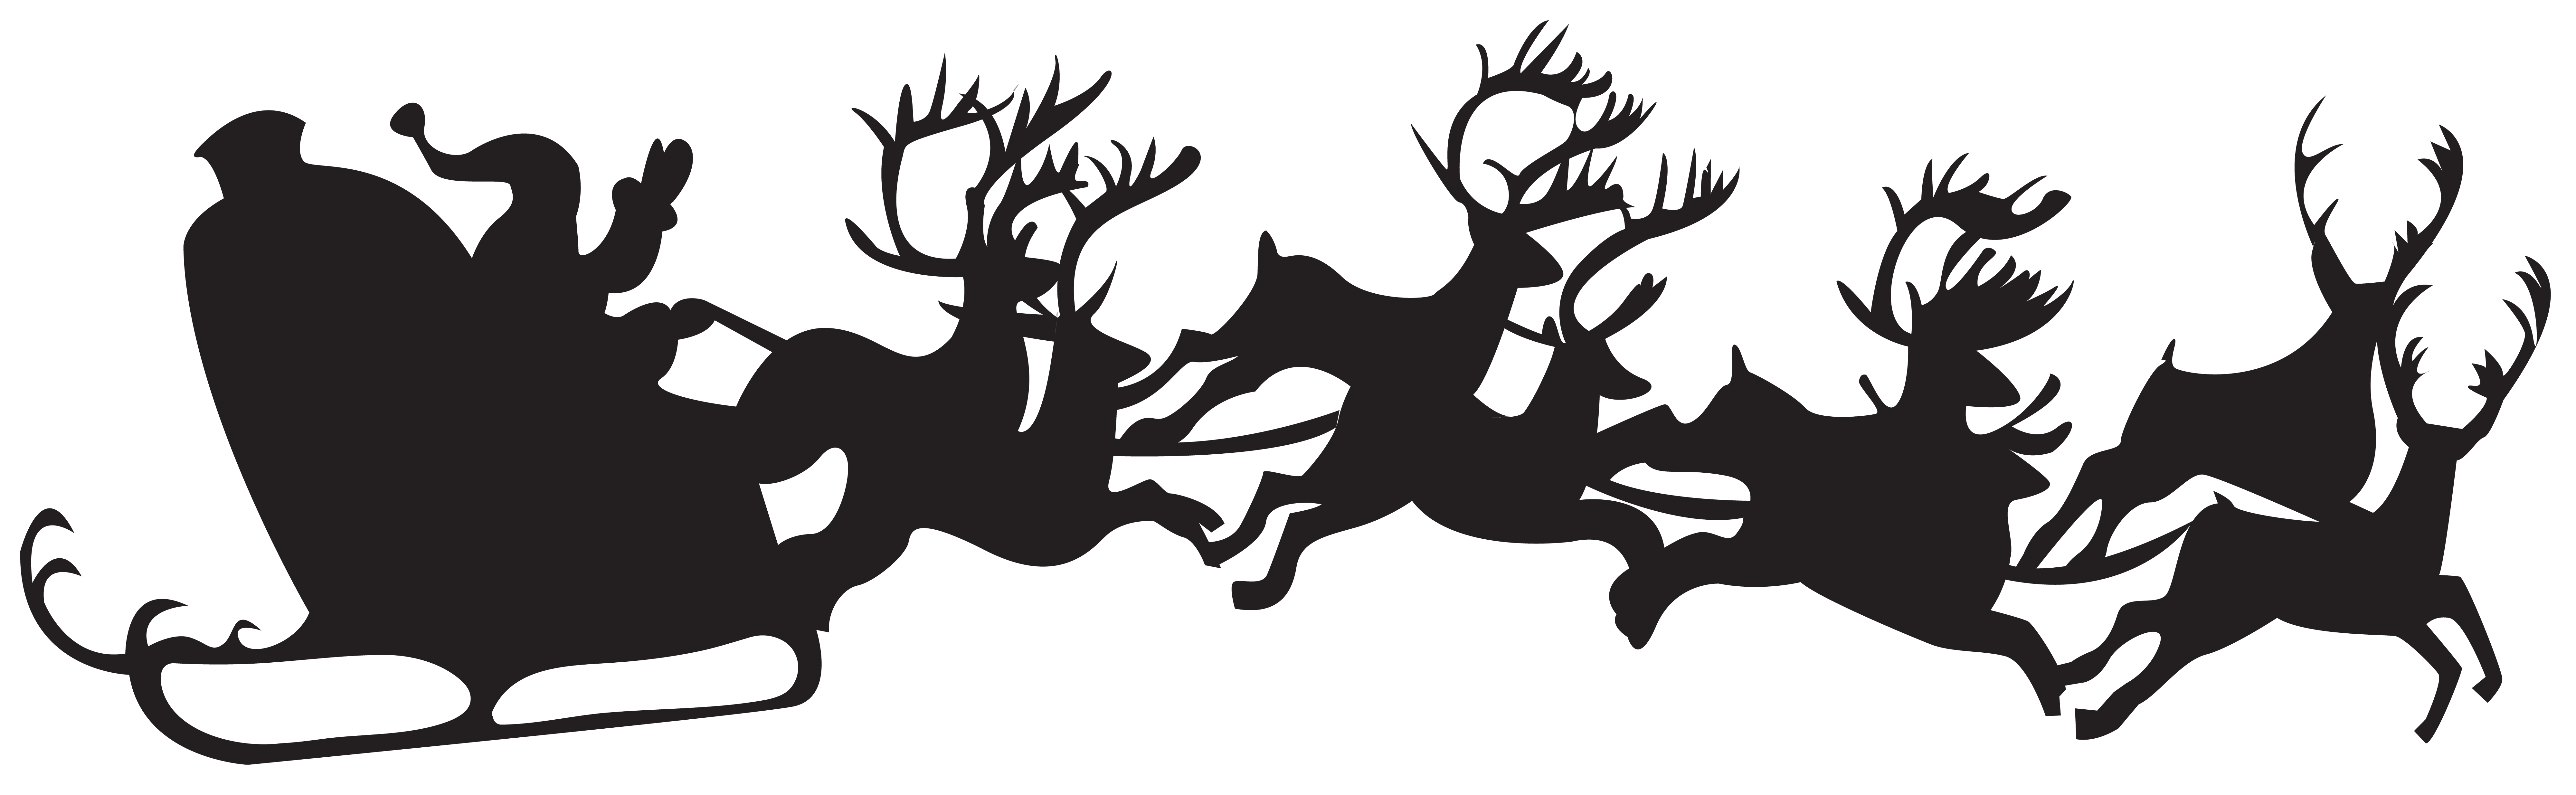 transparent Christmas Silhouette Santa Claus with Sleigh PNG Clip Art